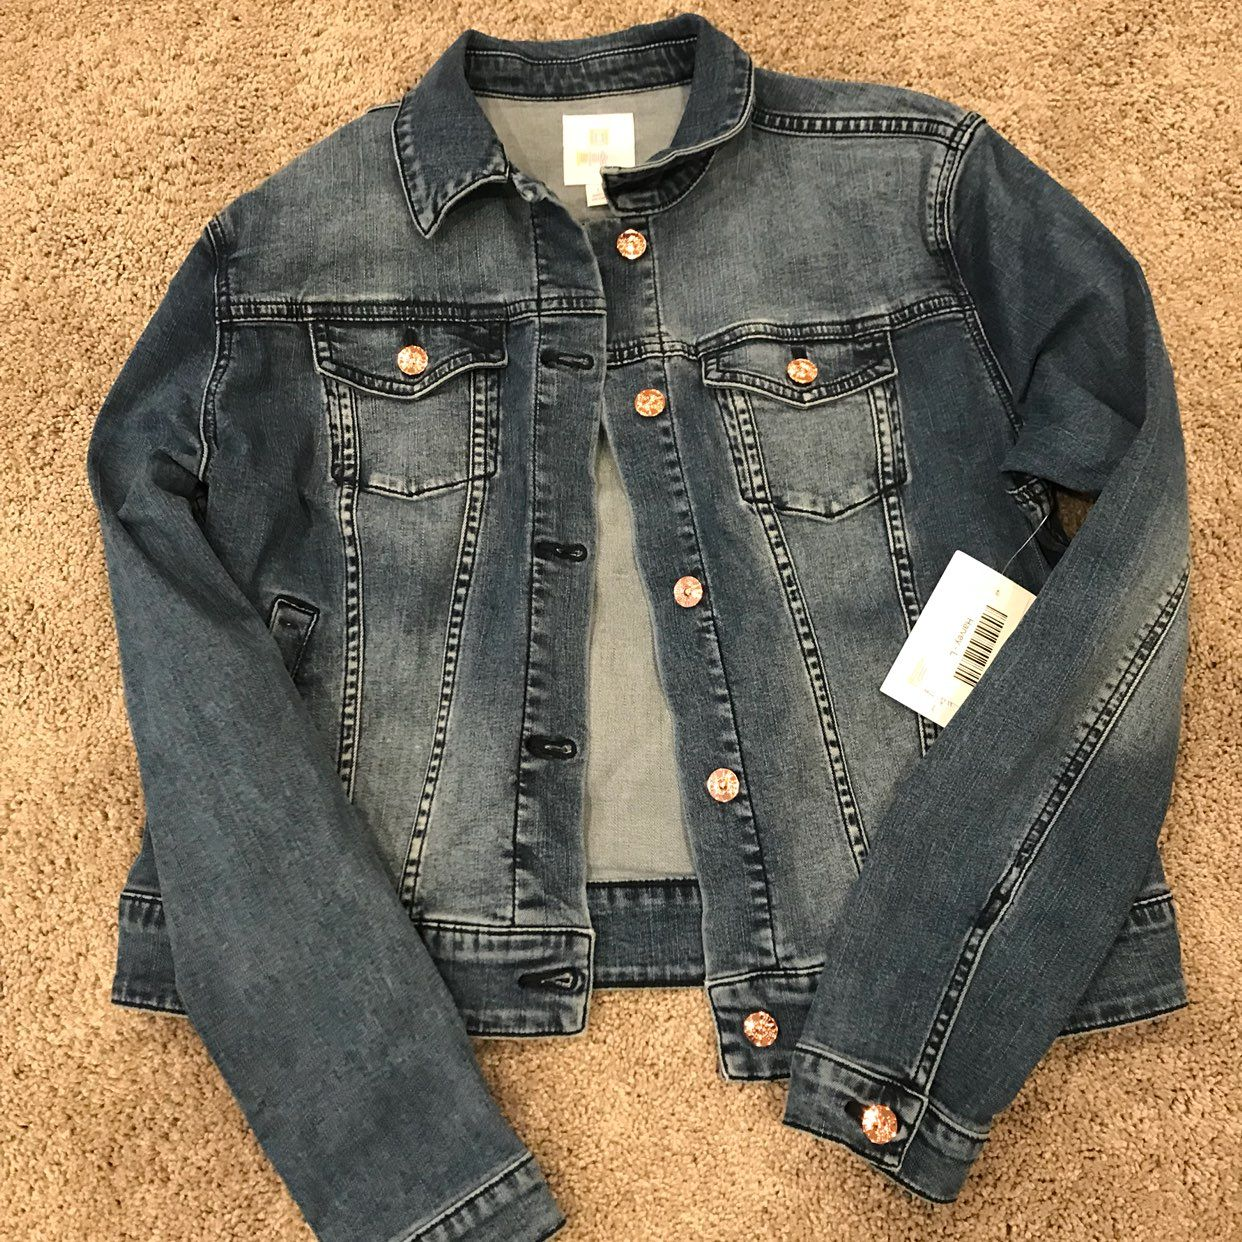 9c0da4cfc43f07 Lularoe Harvey Jacket - Mercari: The Selling App